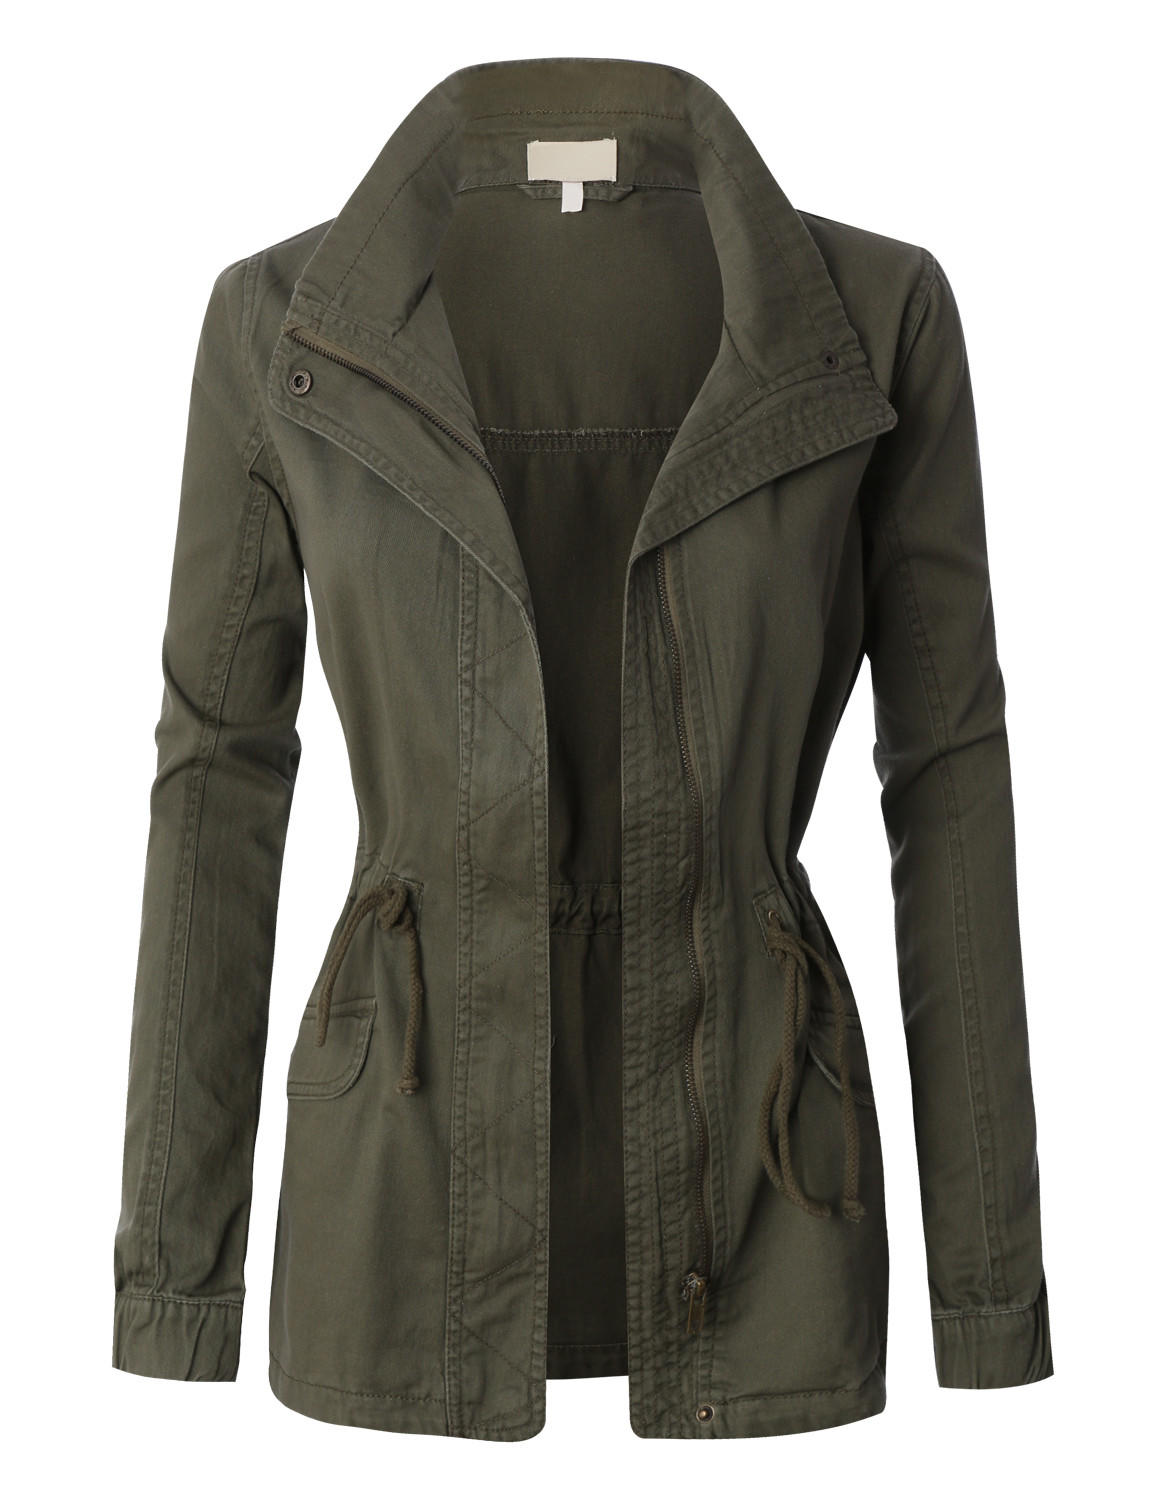 Womens Military Anorak Jacket